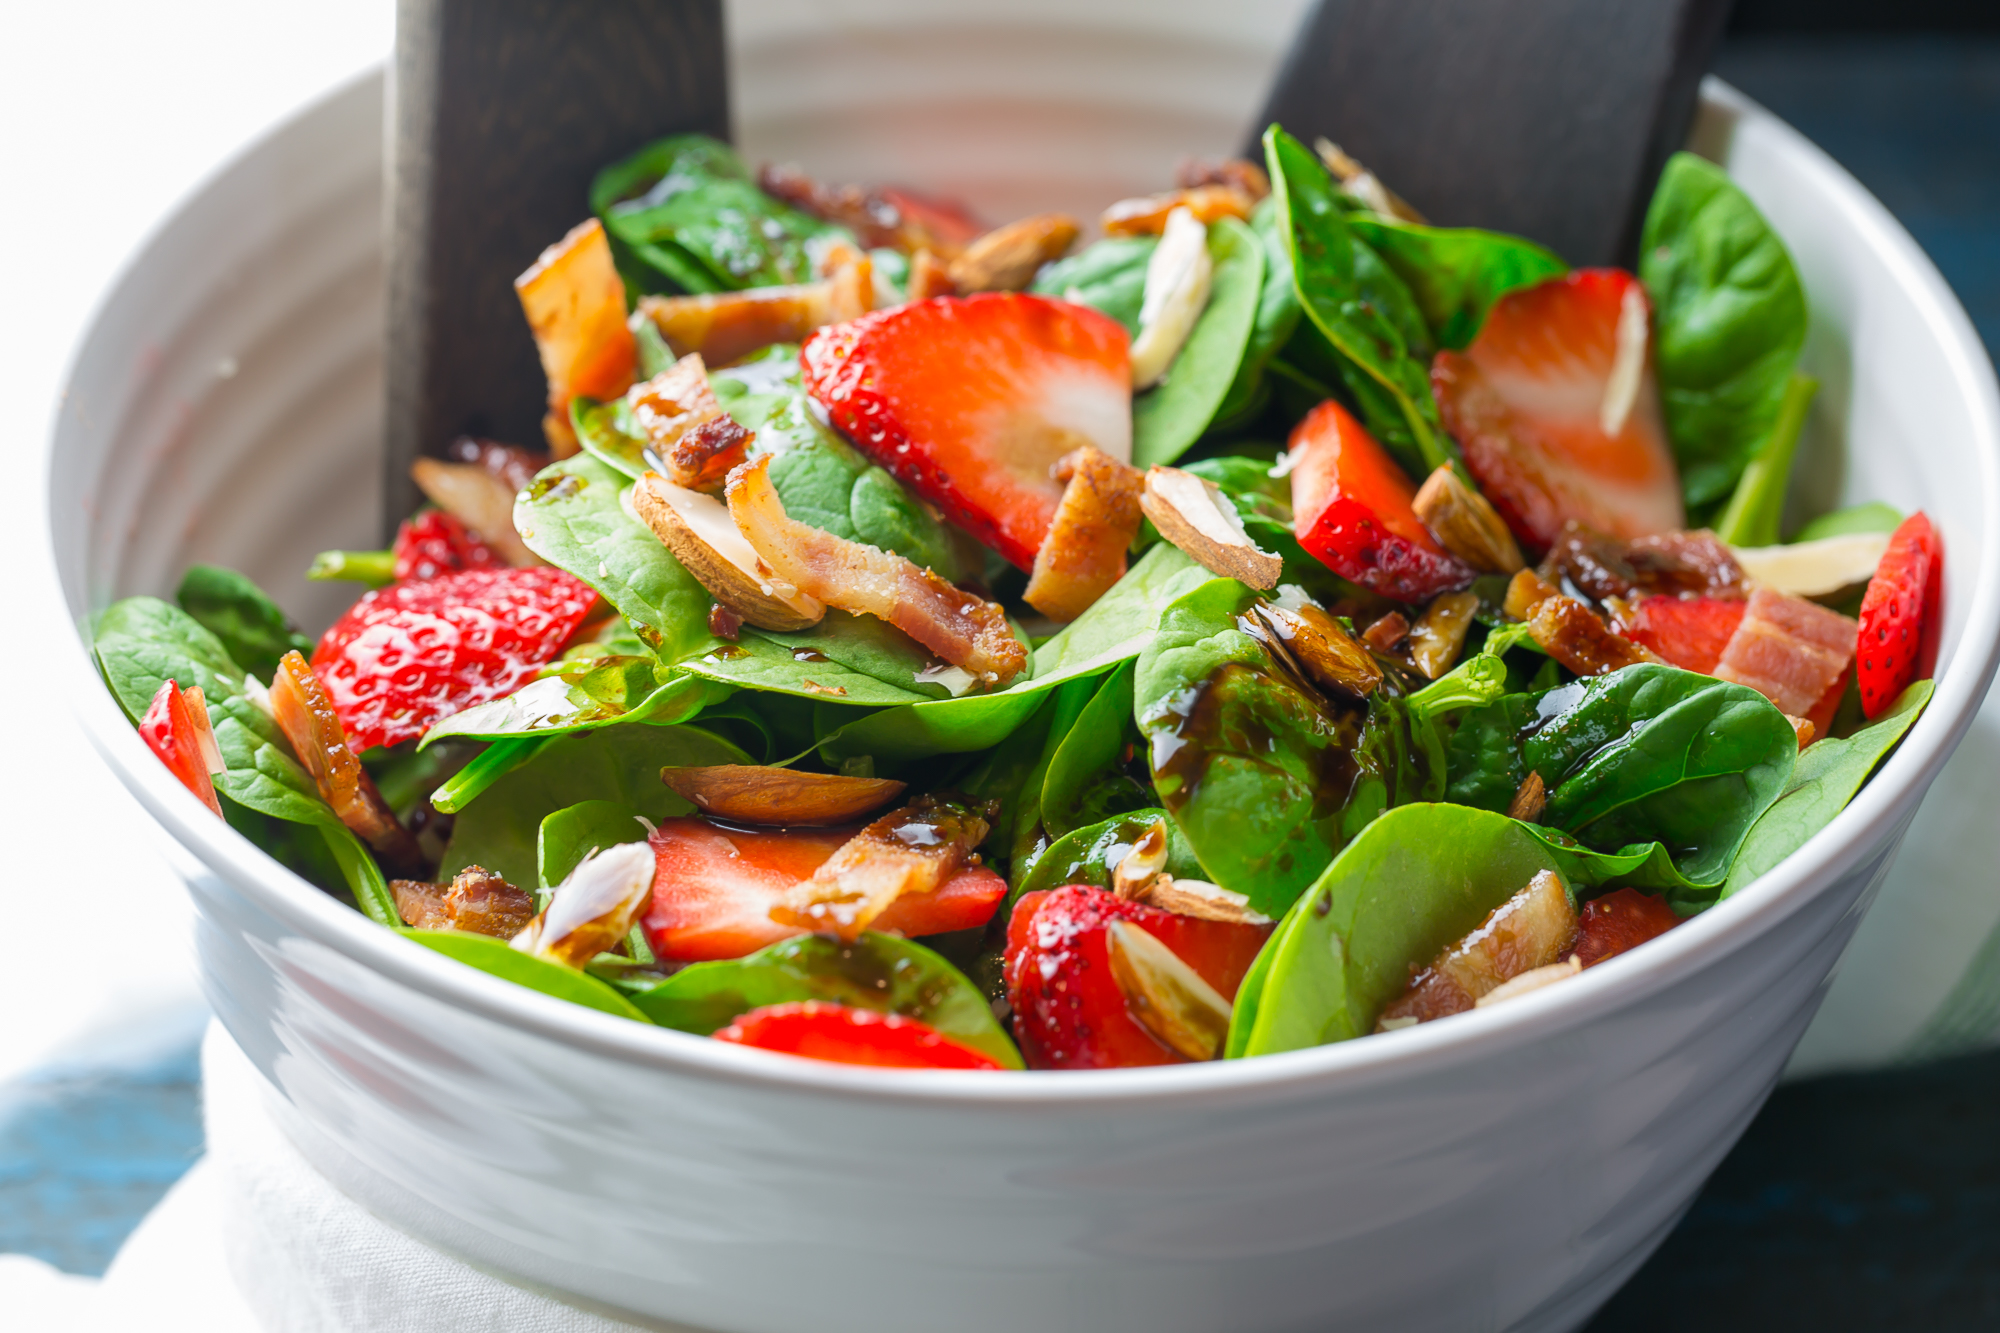 Simple Spinach Salad with Strawberries in a bowl